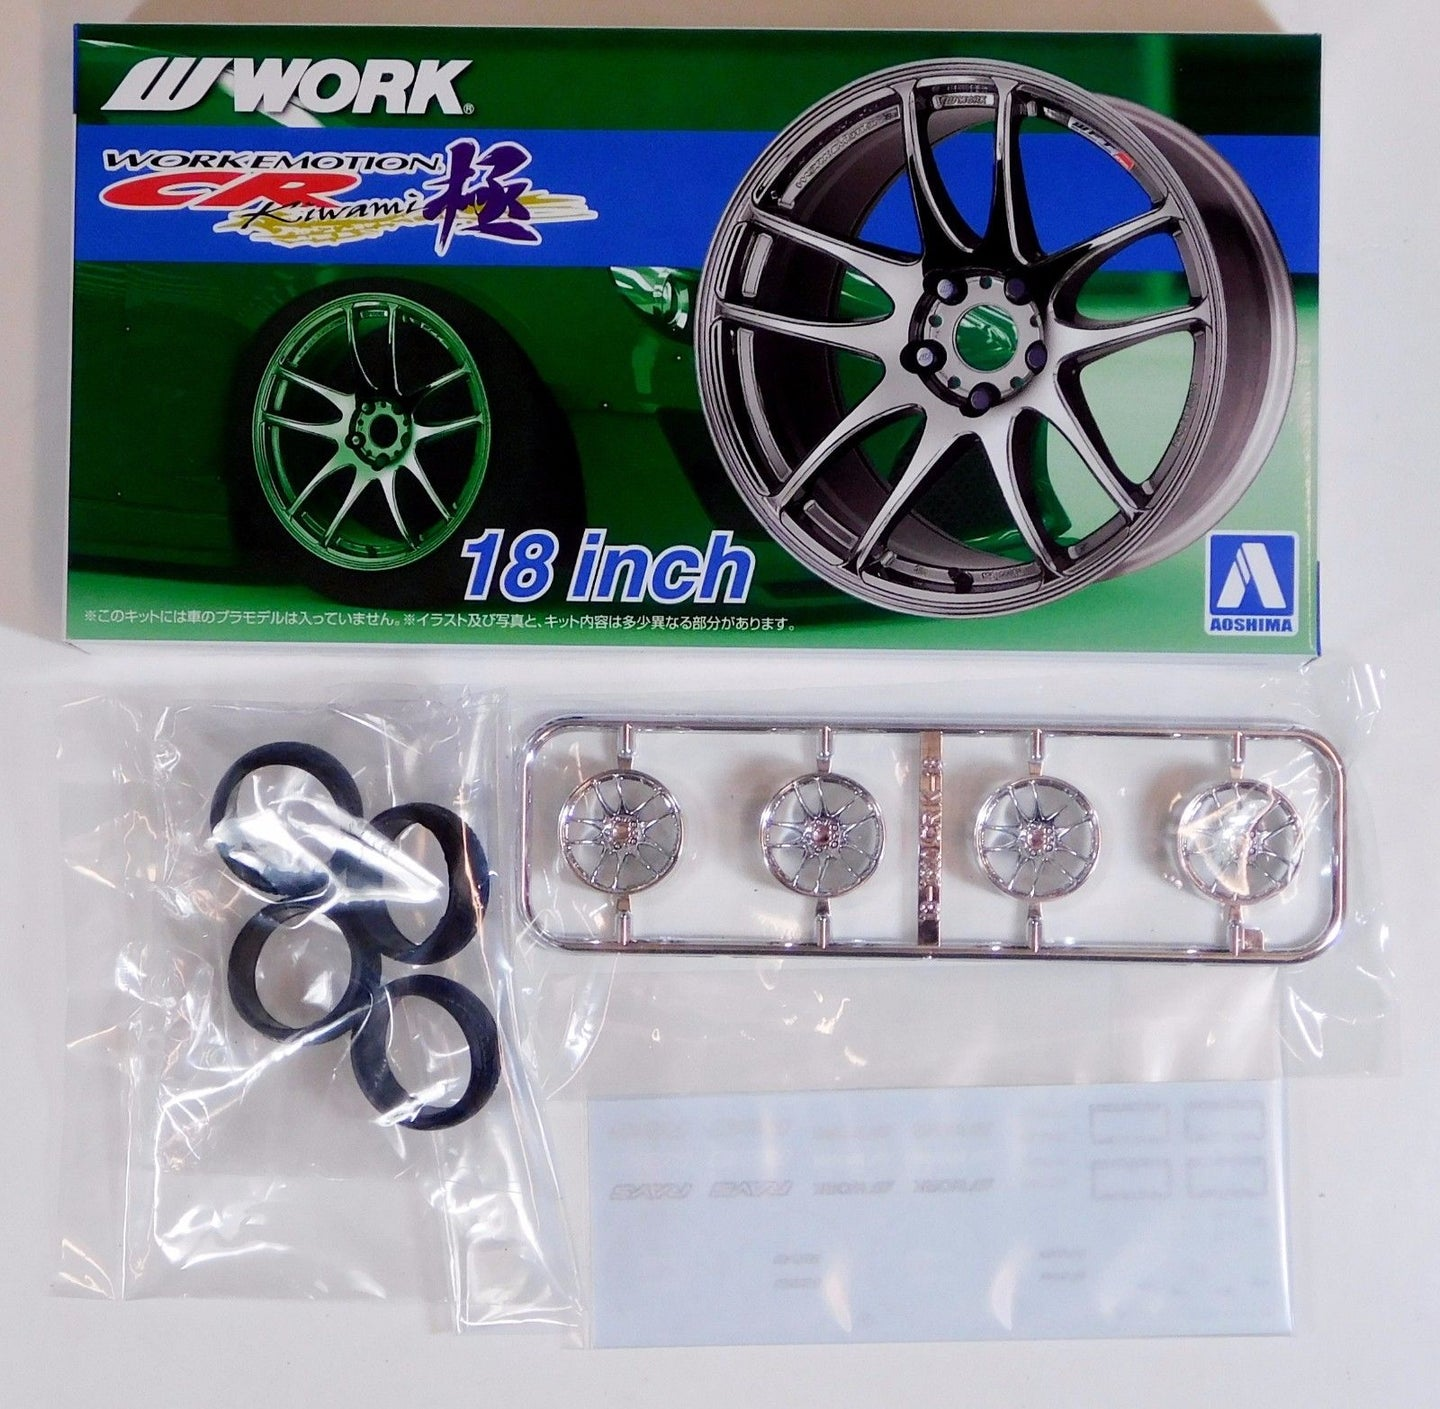 Aoshima 1/24 Rim & Tire Set ( 22) Work Emotion CR 18